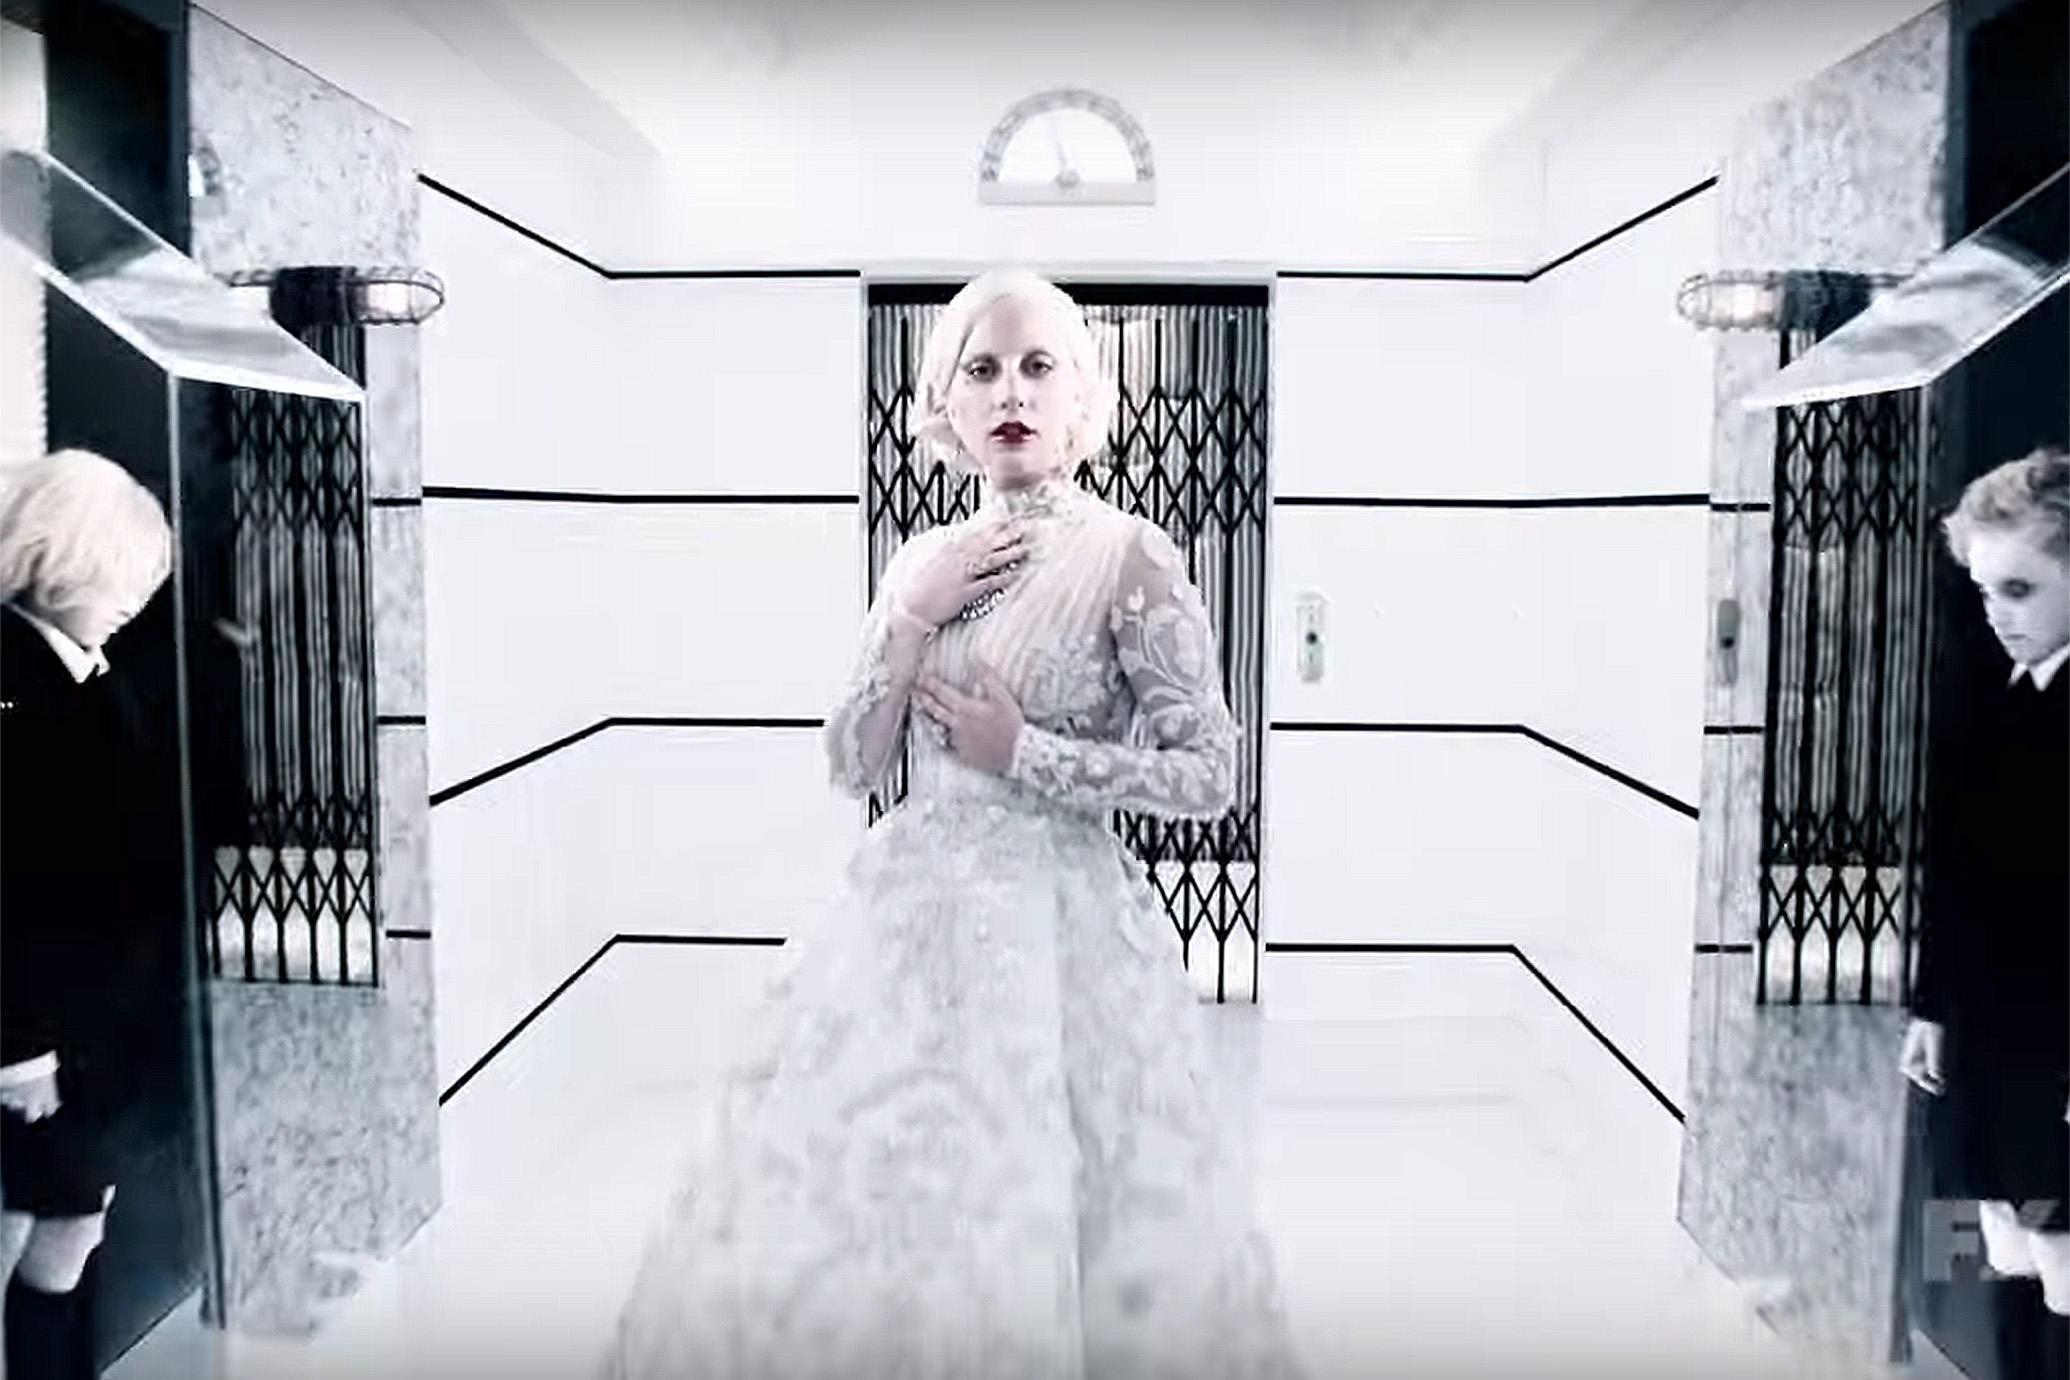 We See More Lady Gaga in an Eerie New American Horror Story Promo –  Entertainment – The State Journal-Register – Springfield, IL